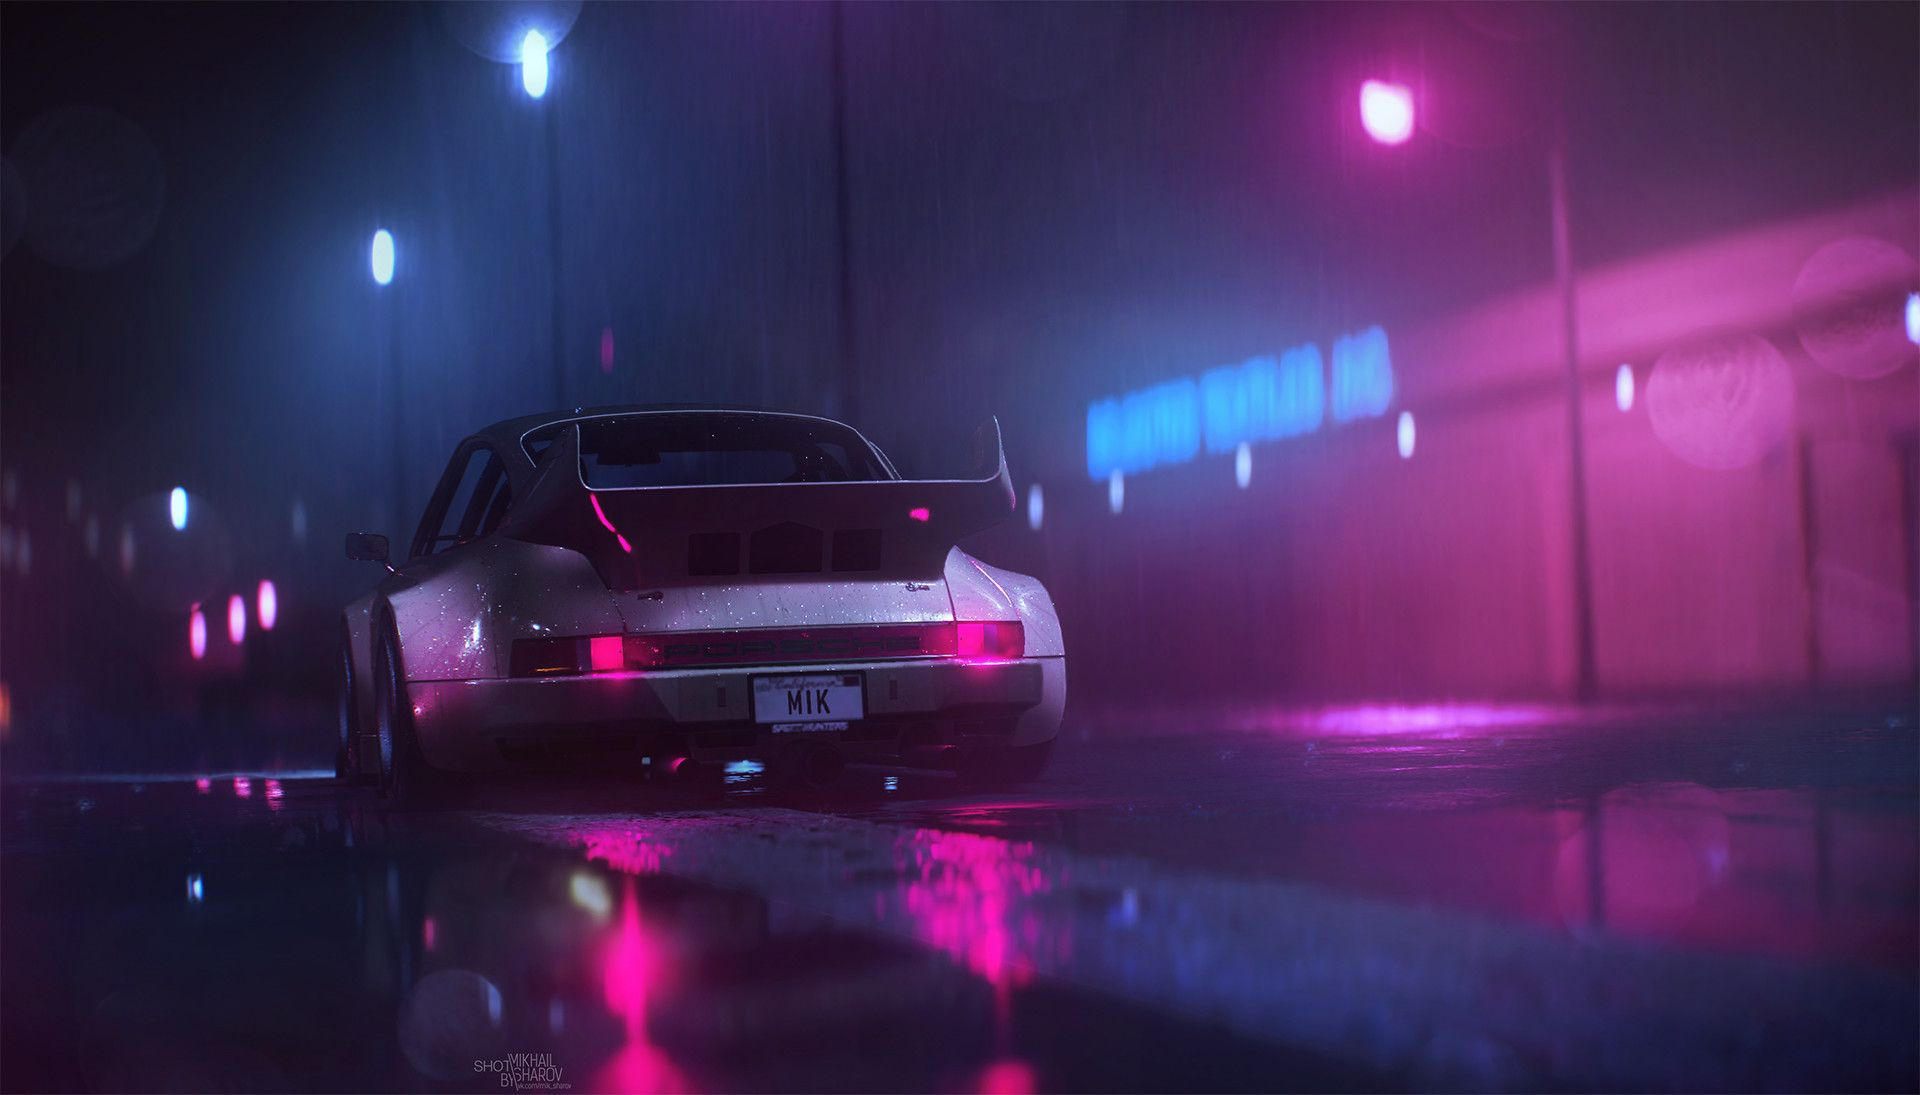 Some Of The Best New Retrowave Synthwave Wallpapers And Artwork Vaporwave Wallpaper Neon Wallpaper Background Images Wallpapers